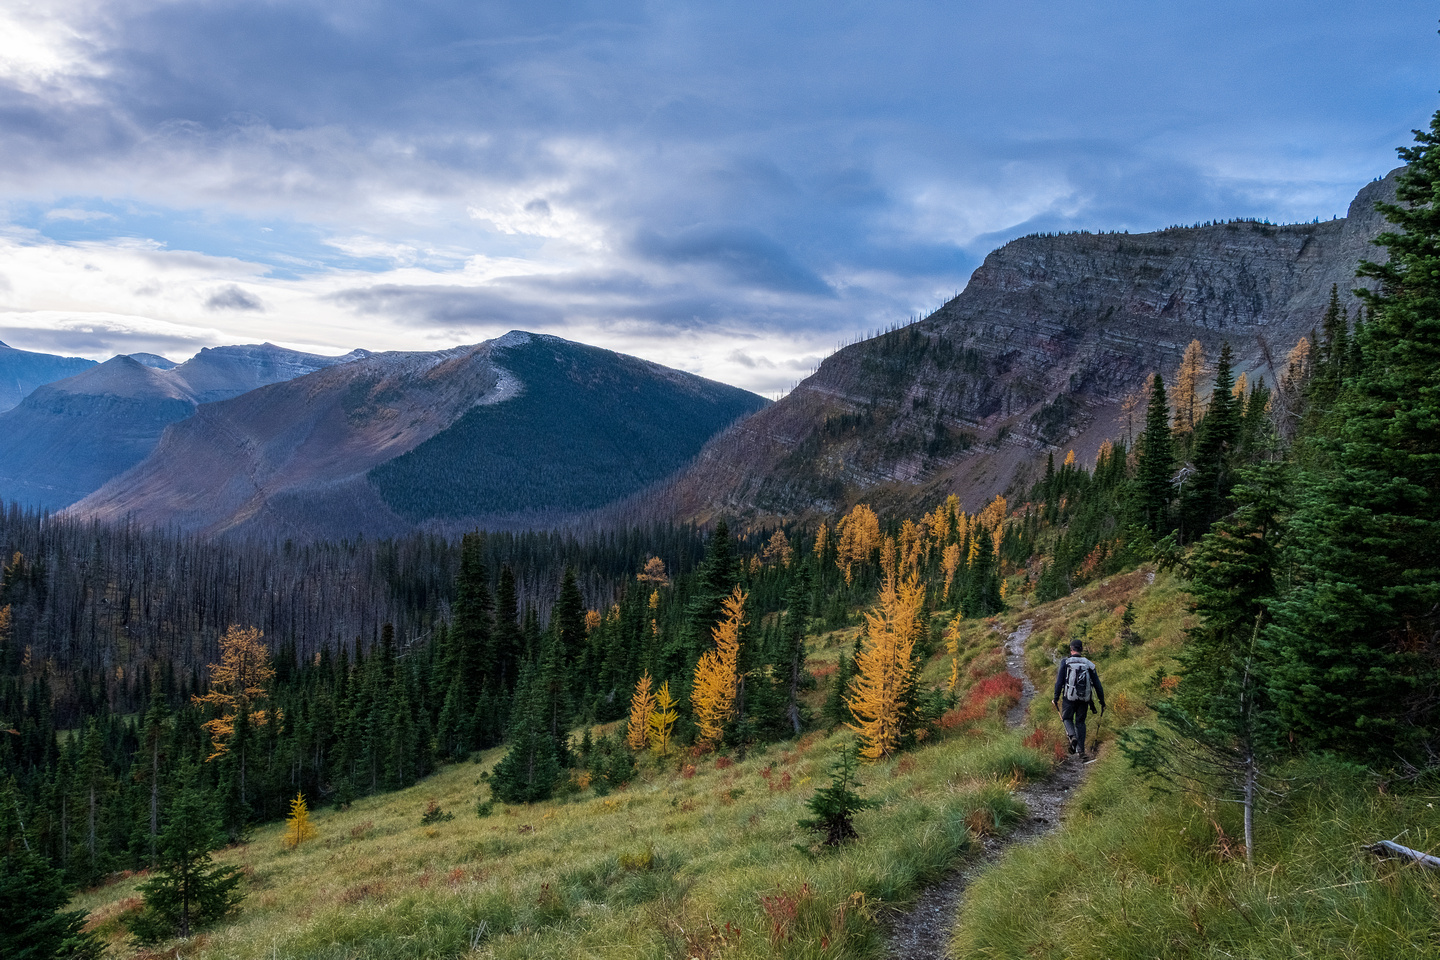 Hiking the Tamarack Trail / GDT between Twin Lakes and Lone Lake.